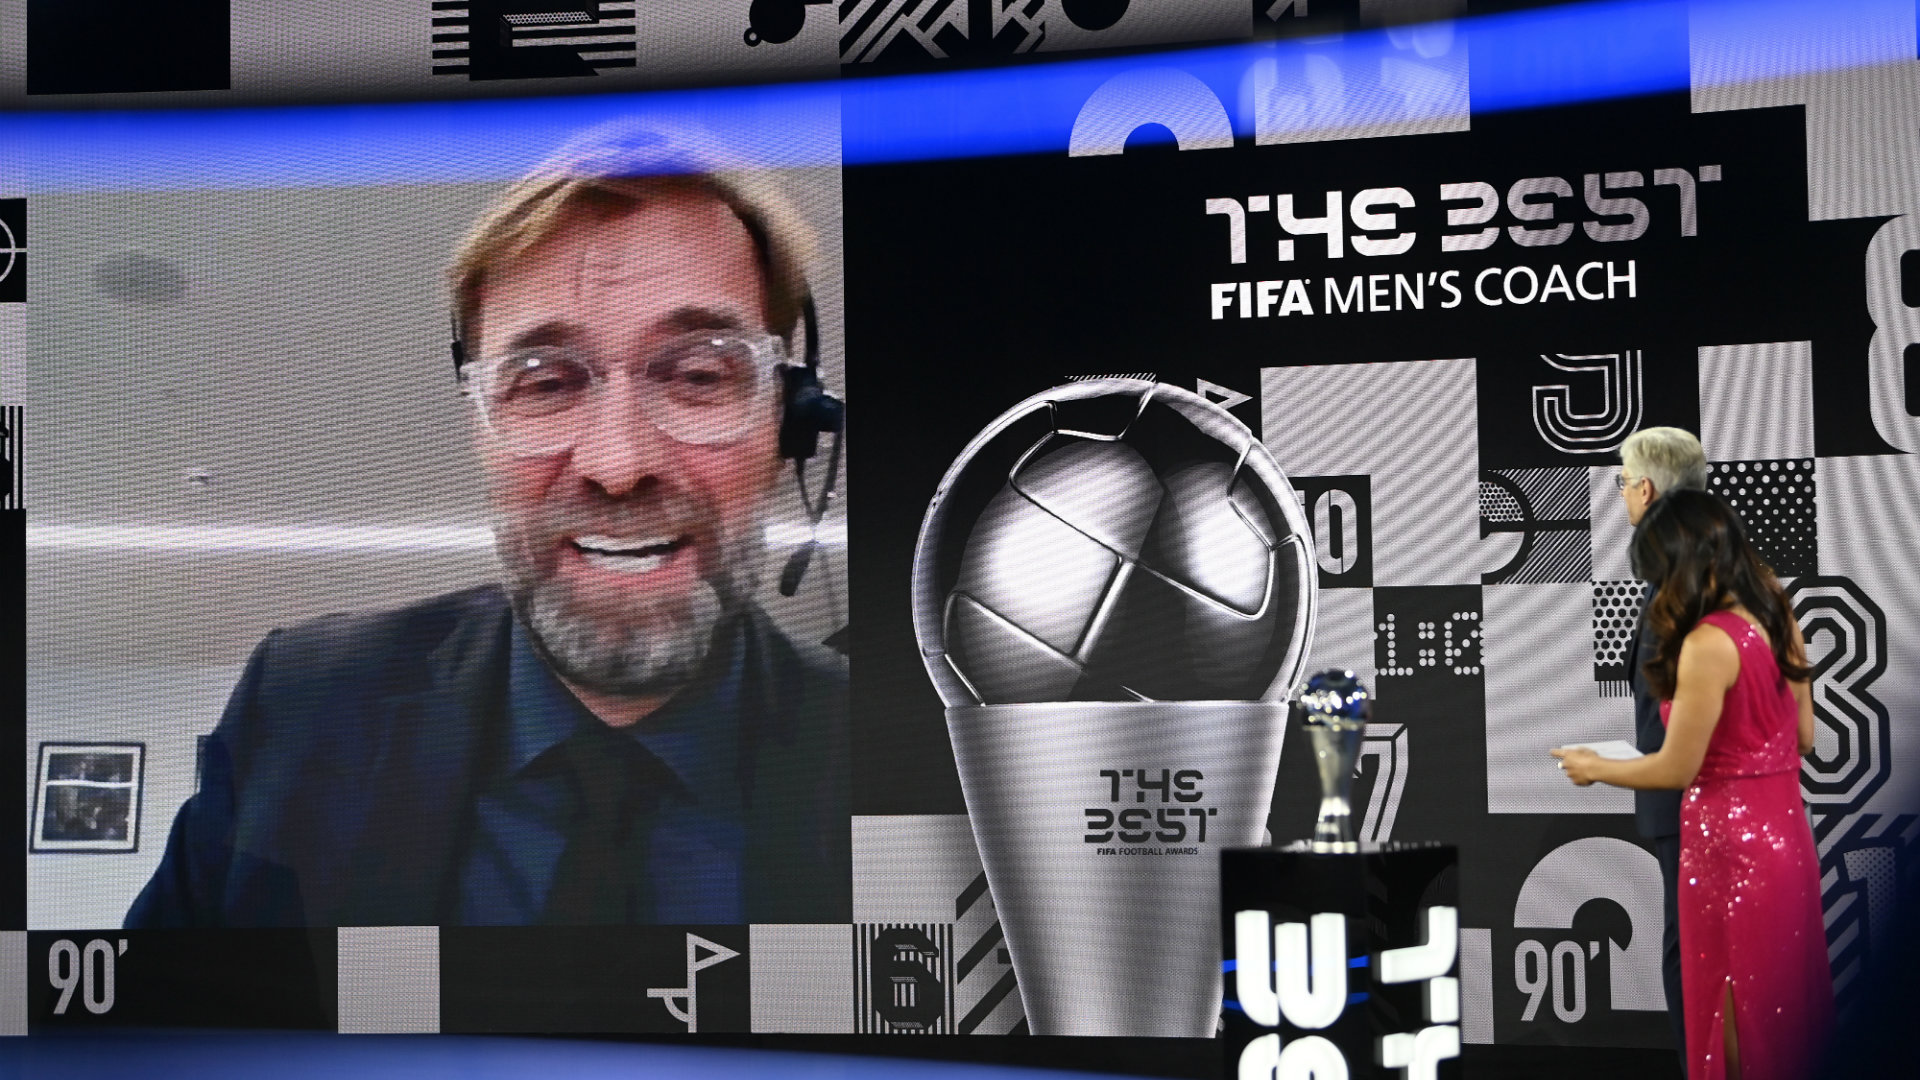 Klopp named The Best FIFA Men's Coach for the second time as Liverpool boss beats Flick and Bielsa to award